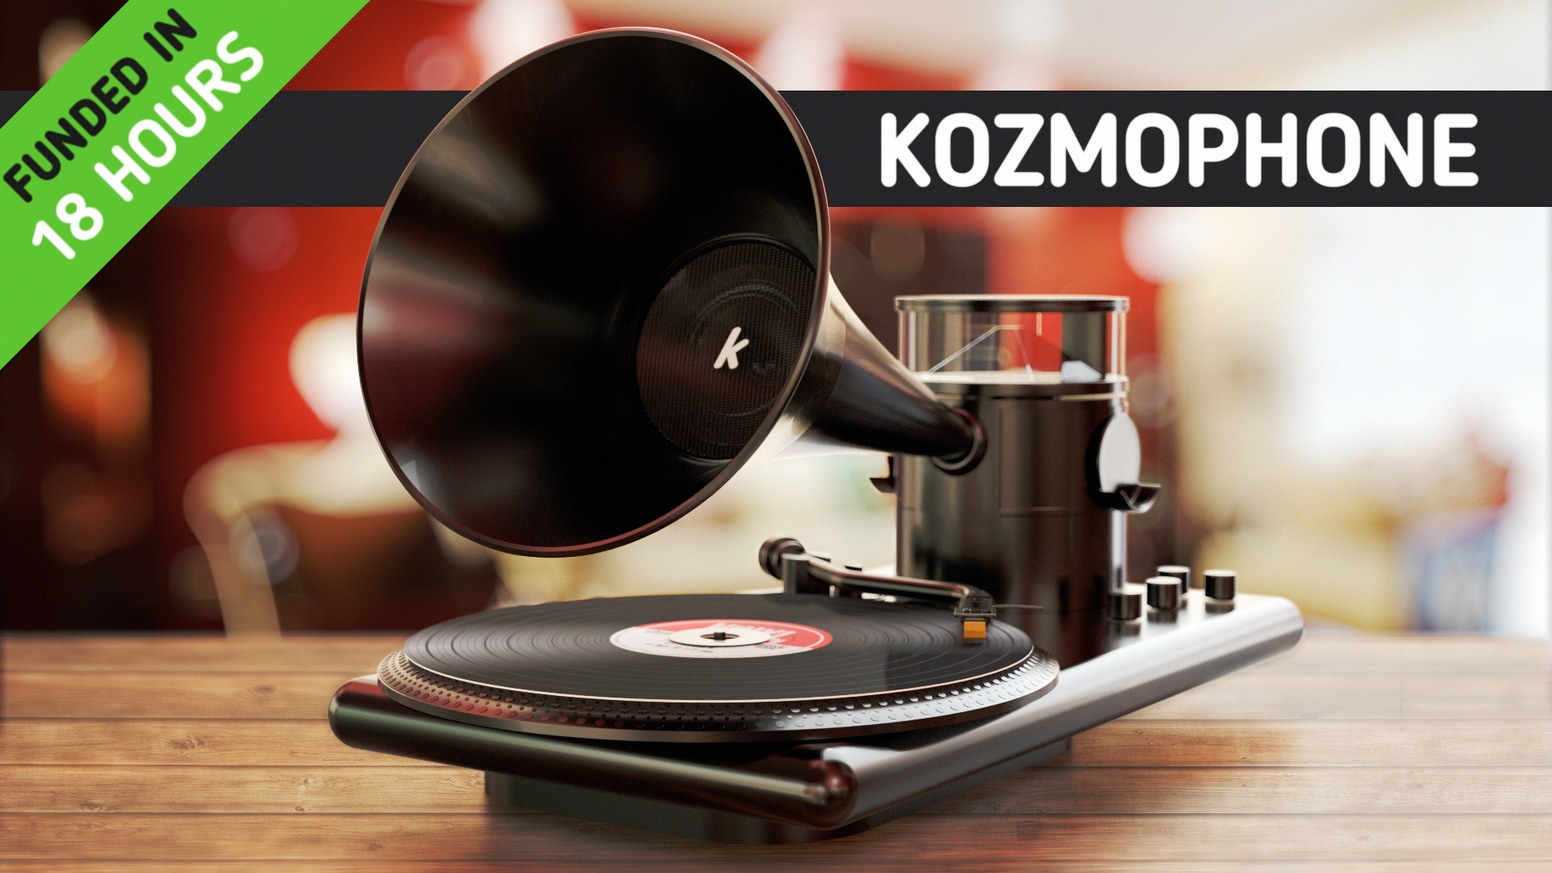 The Kozmophone is a Holographic, Bluetooth Turntable